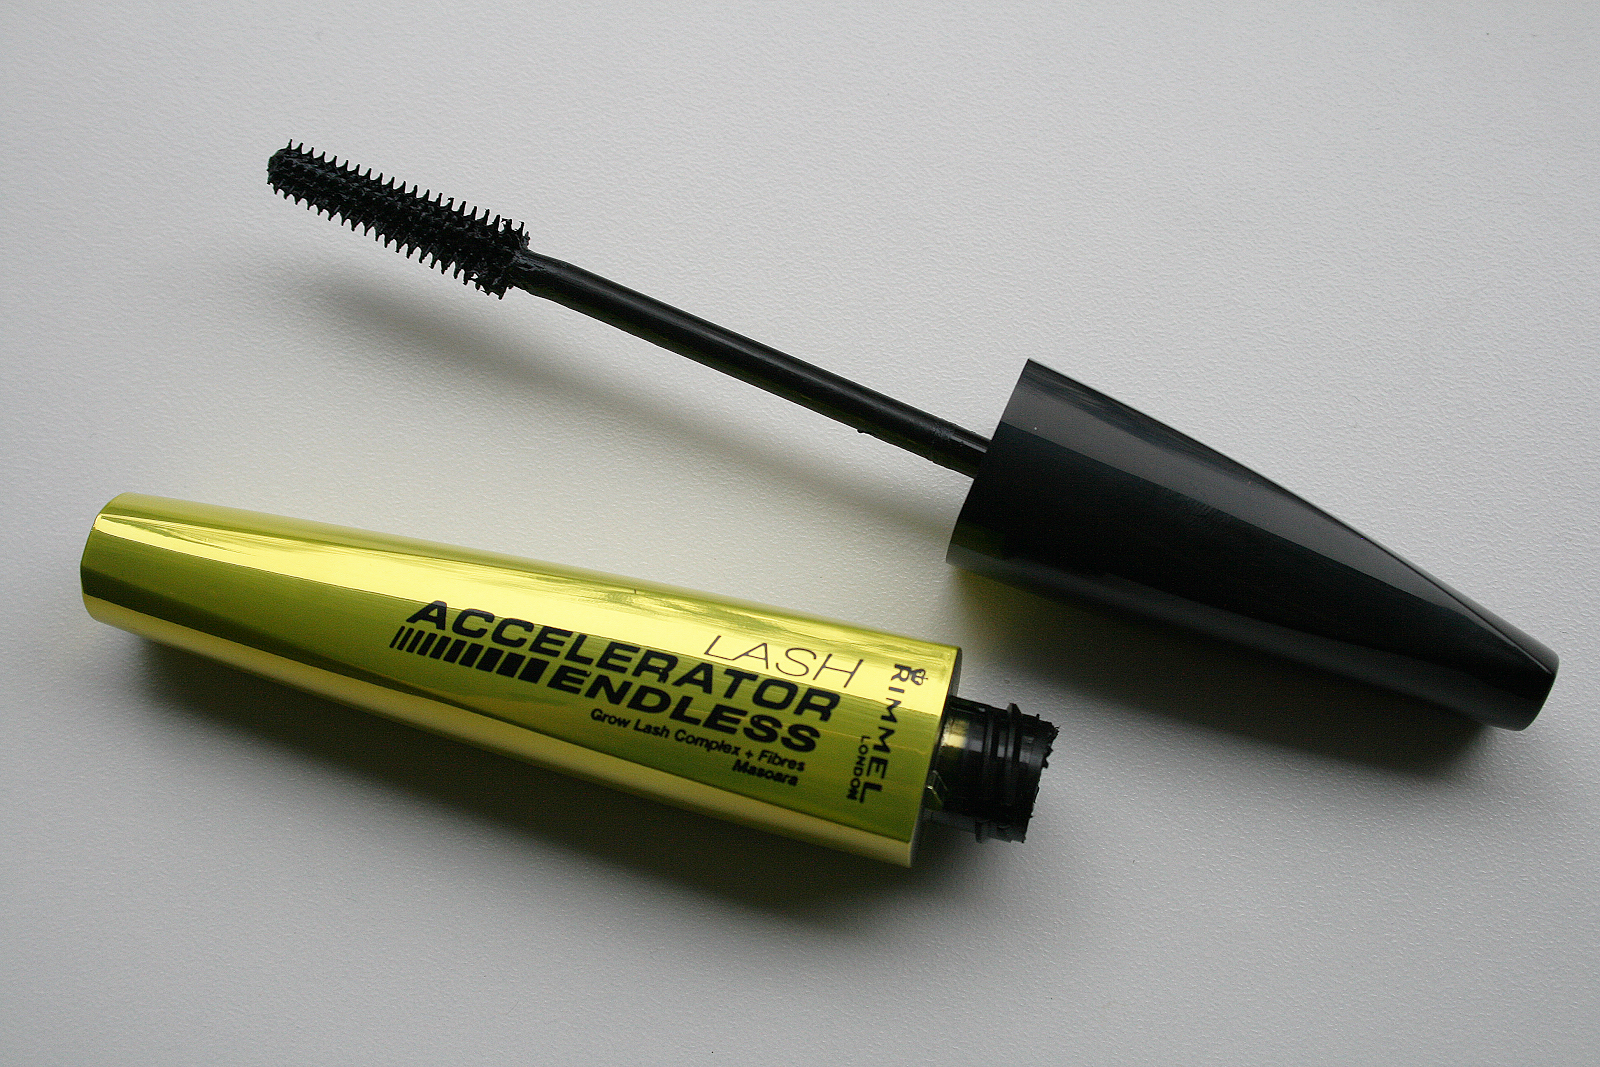 9a1ec6cf67f rimmel mascara lash accelerator reviews